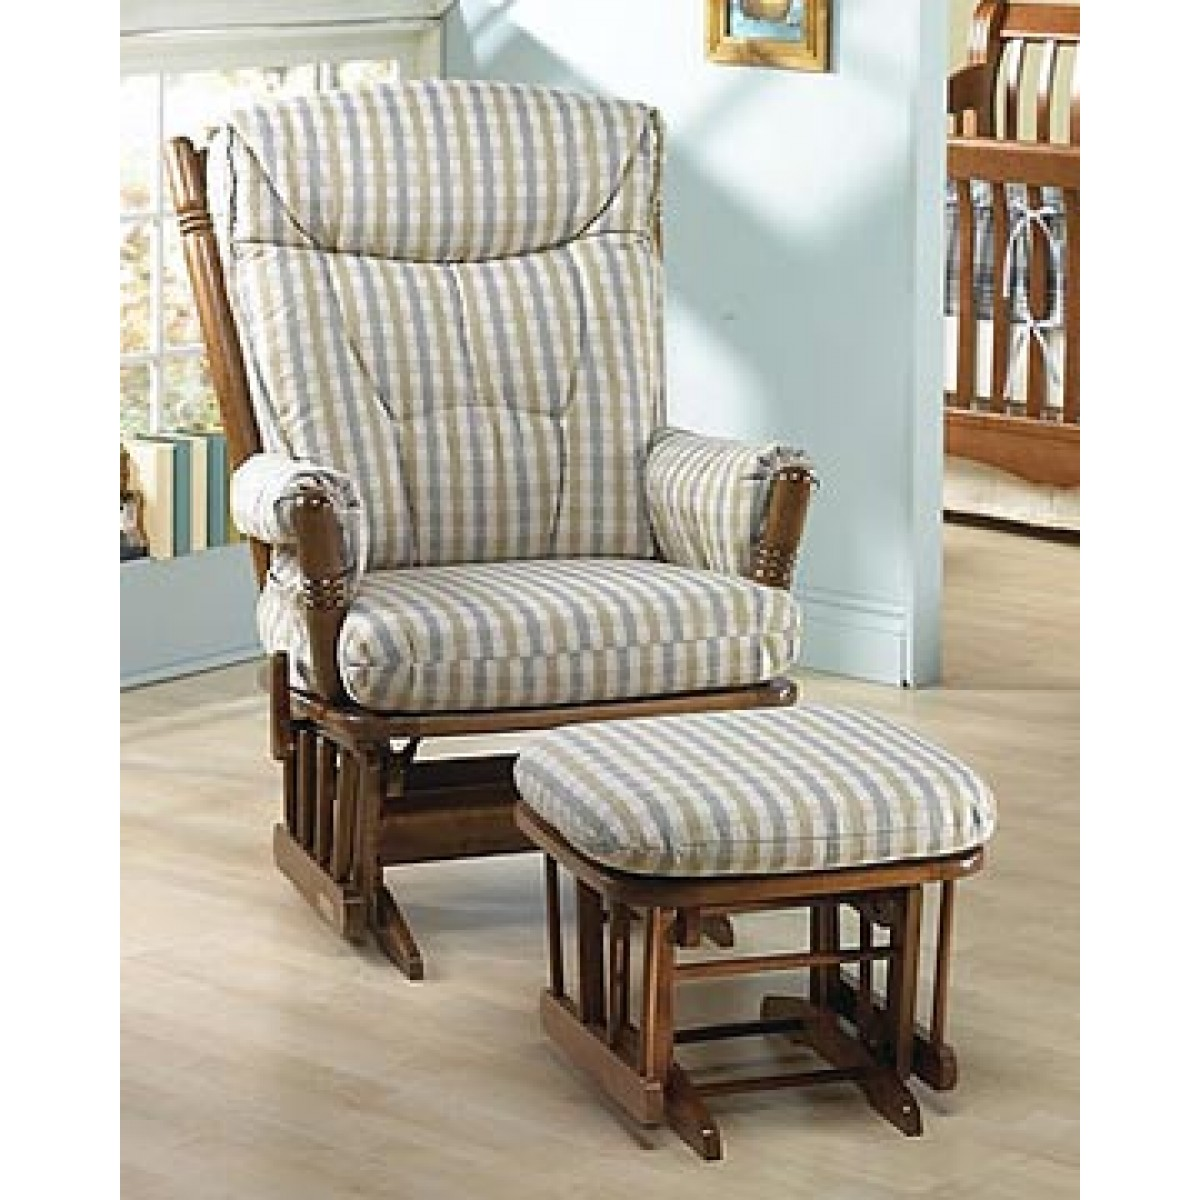 glider 15 style no 914 - Cheap Rocking Chairs